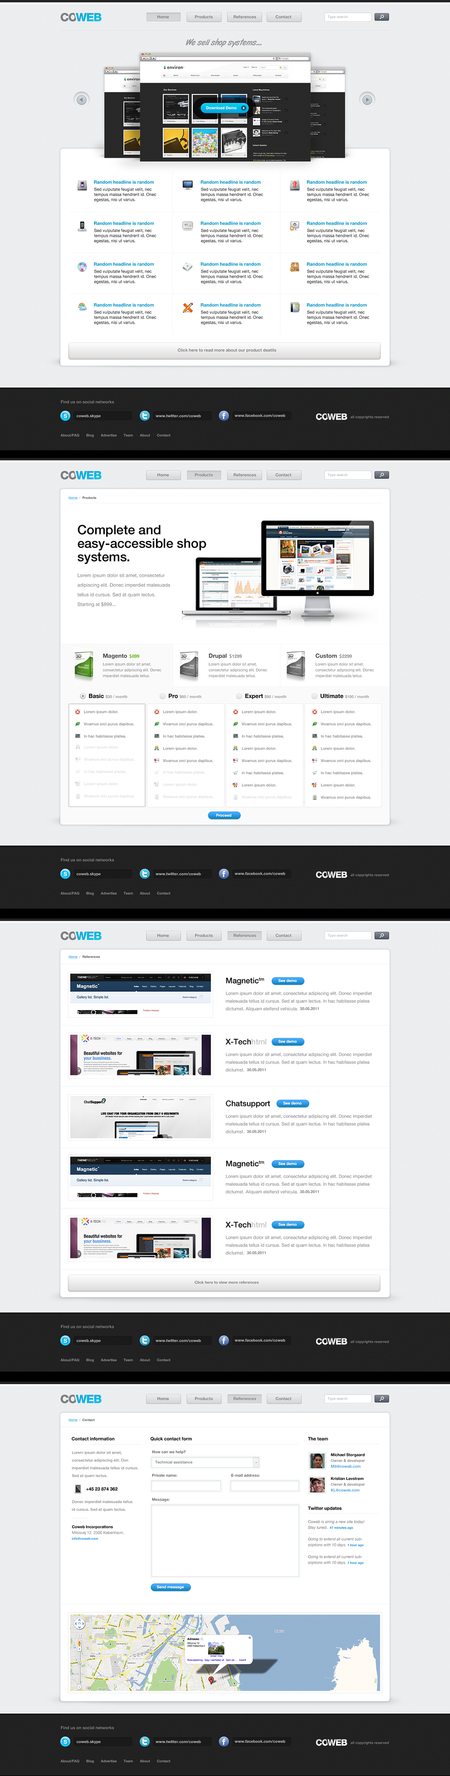 COWEB design by ejsing